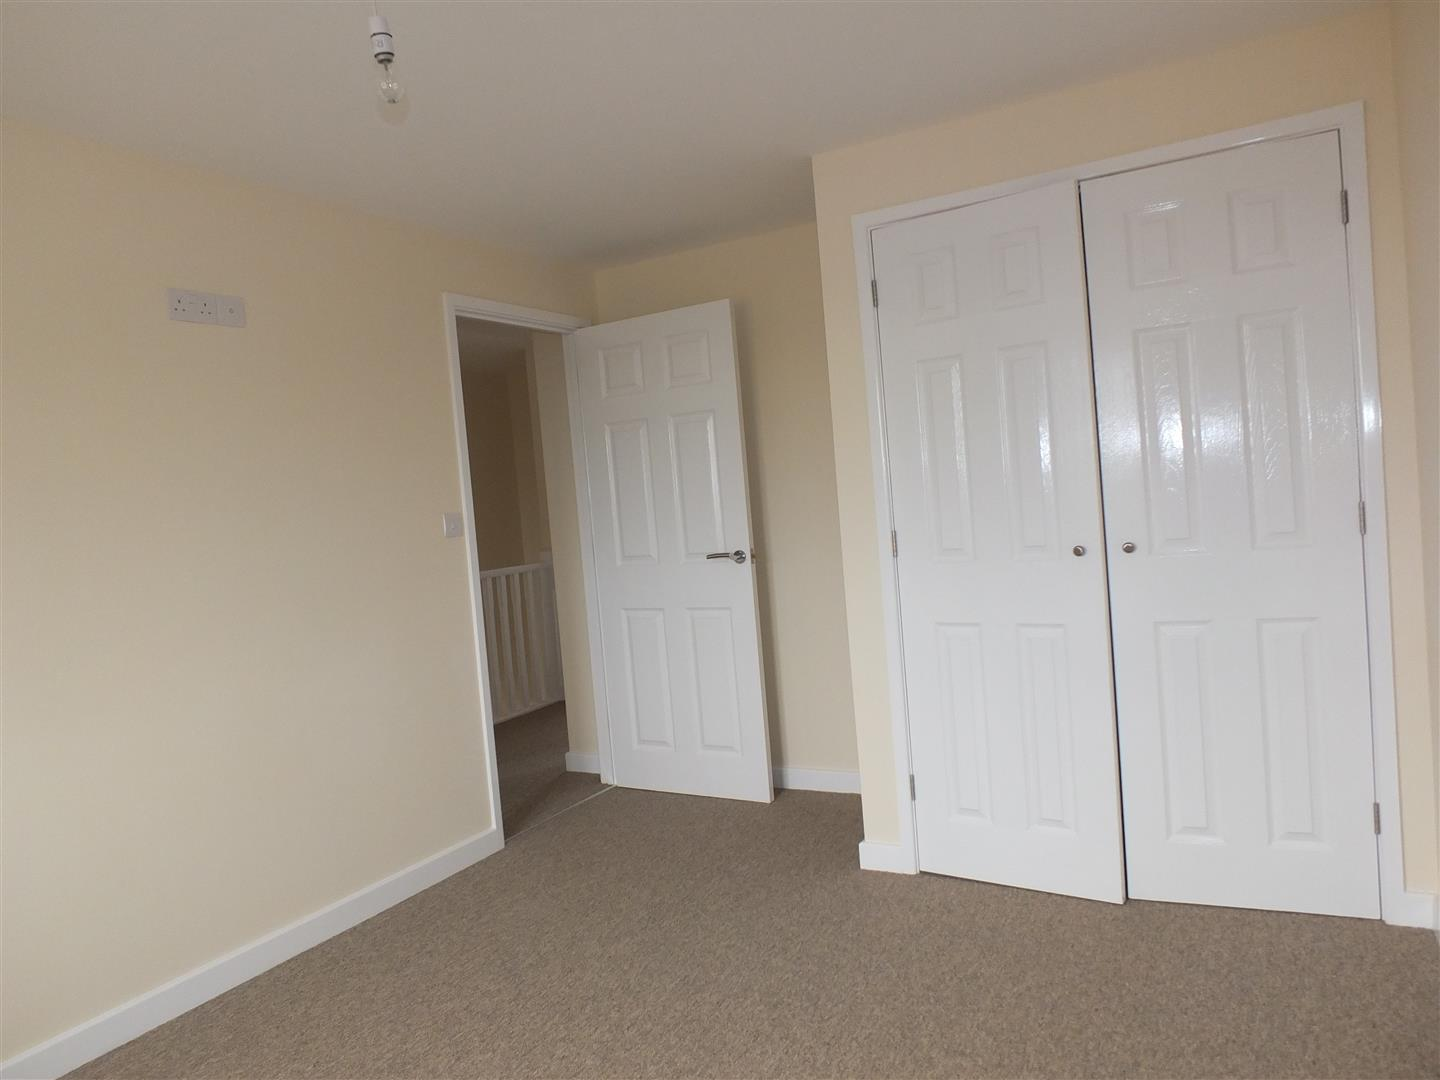 3 bed house to rent in Long Sutton, PE12 9LE  - Property Image 1